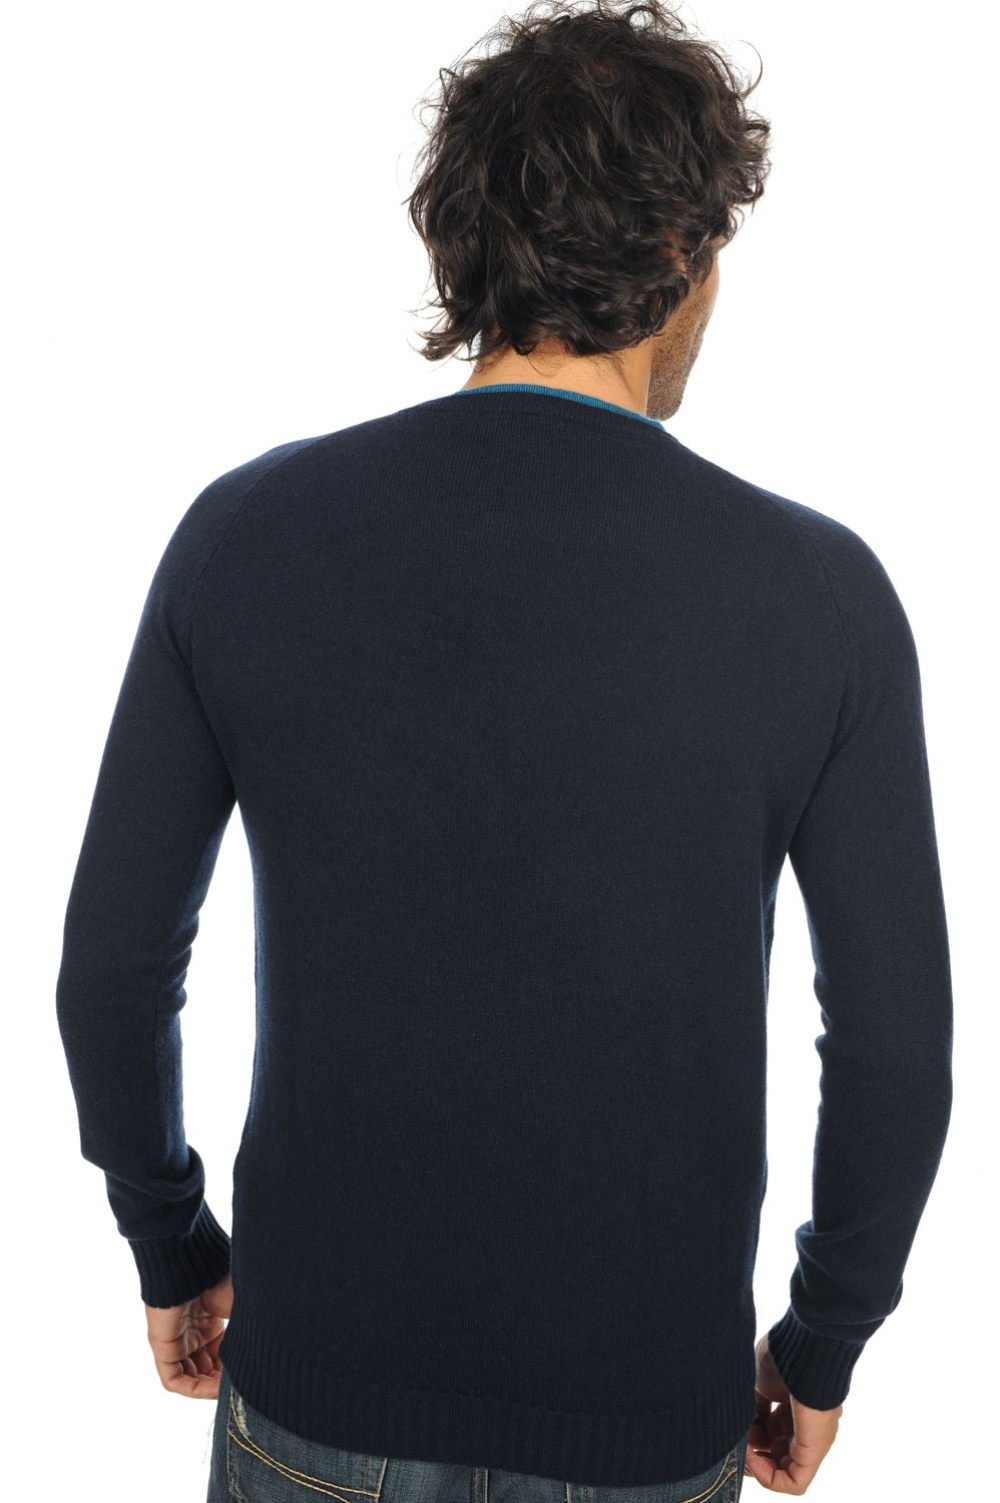 cachemire pull homme col rond nils marine fonce bleu canard m